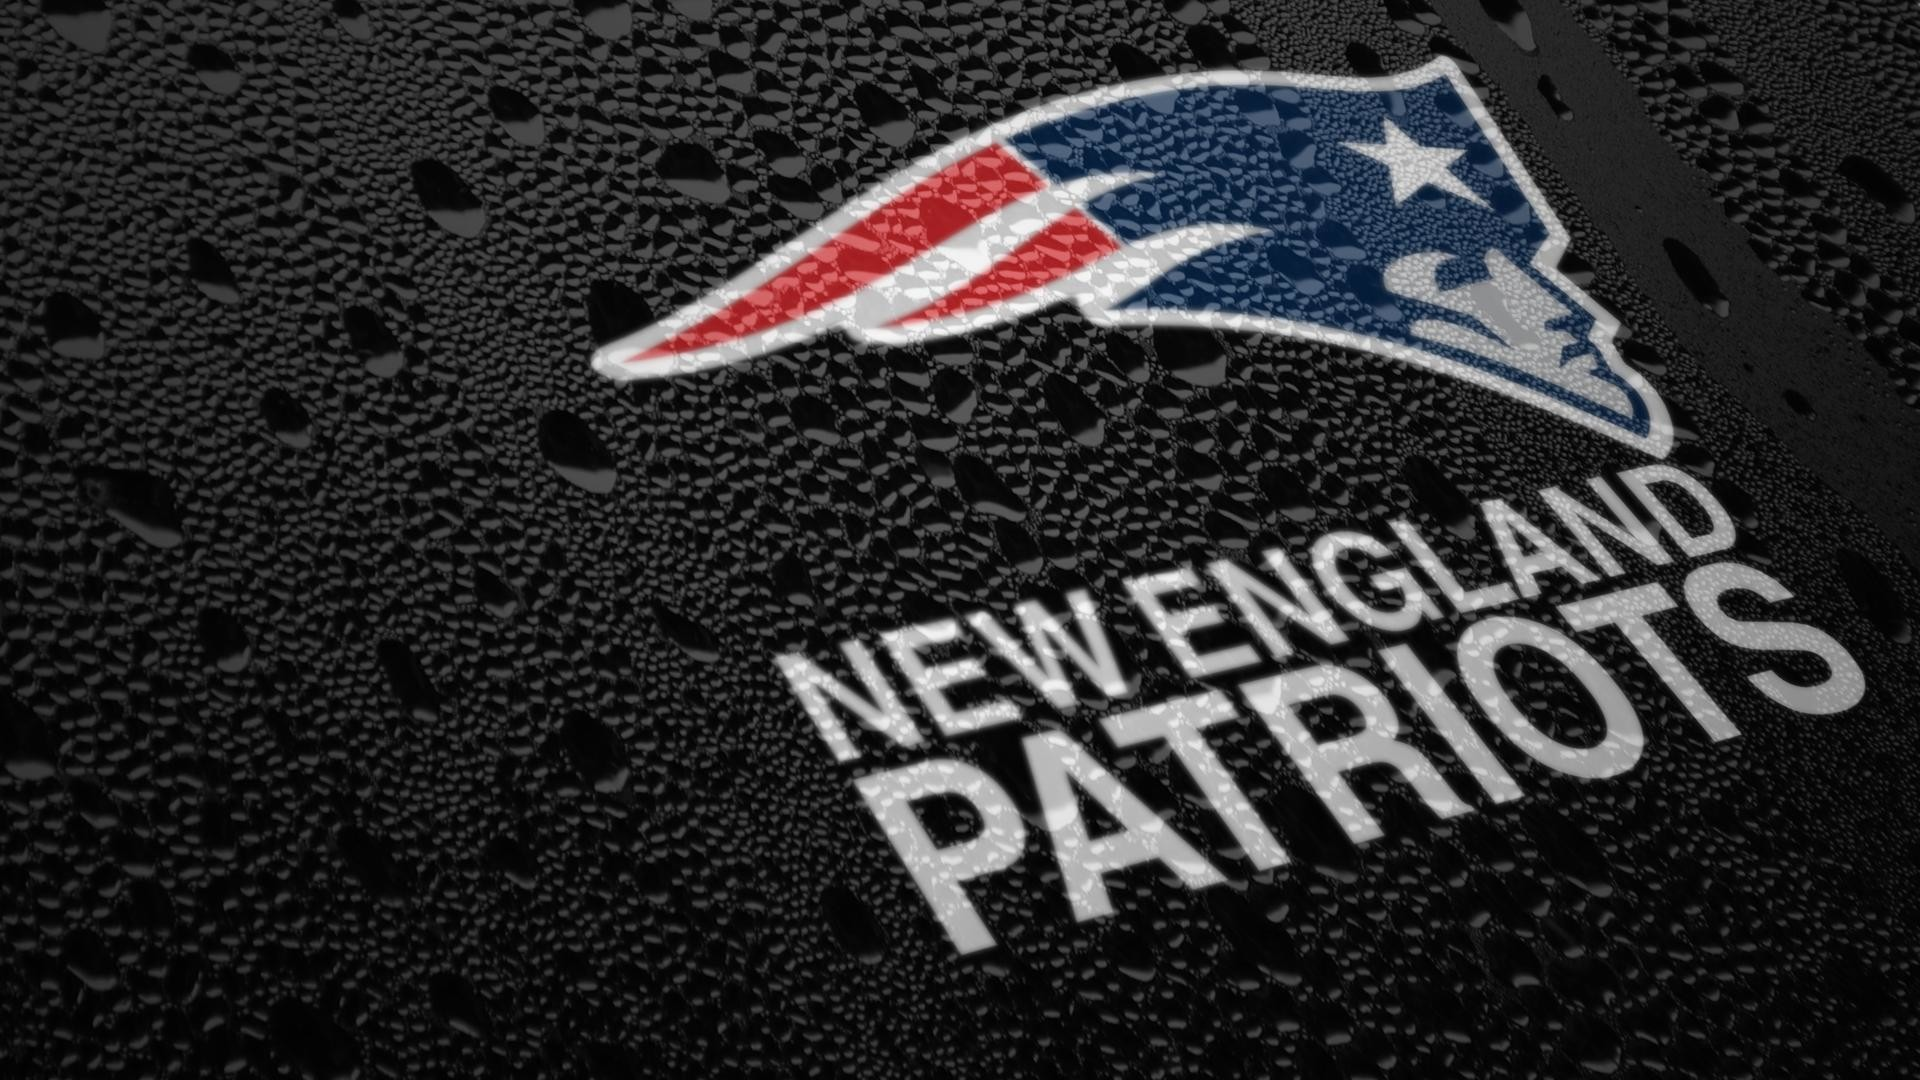 Old patriots logo wallpaper 60 images 1920x1080 new england patriots schedule hd desktop wallpaper hd desktop free wallpapers pinterest voltagebd Images